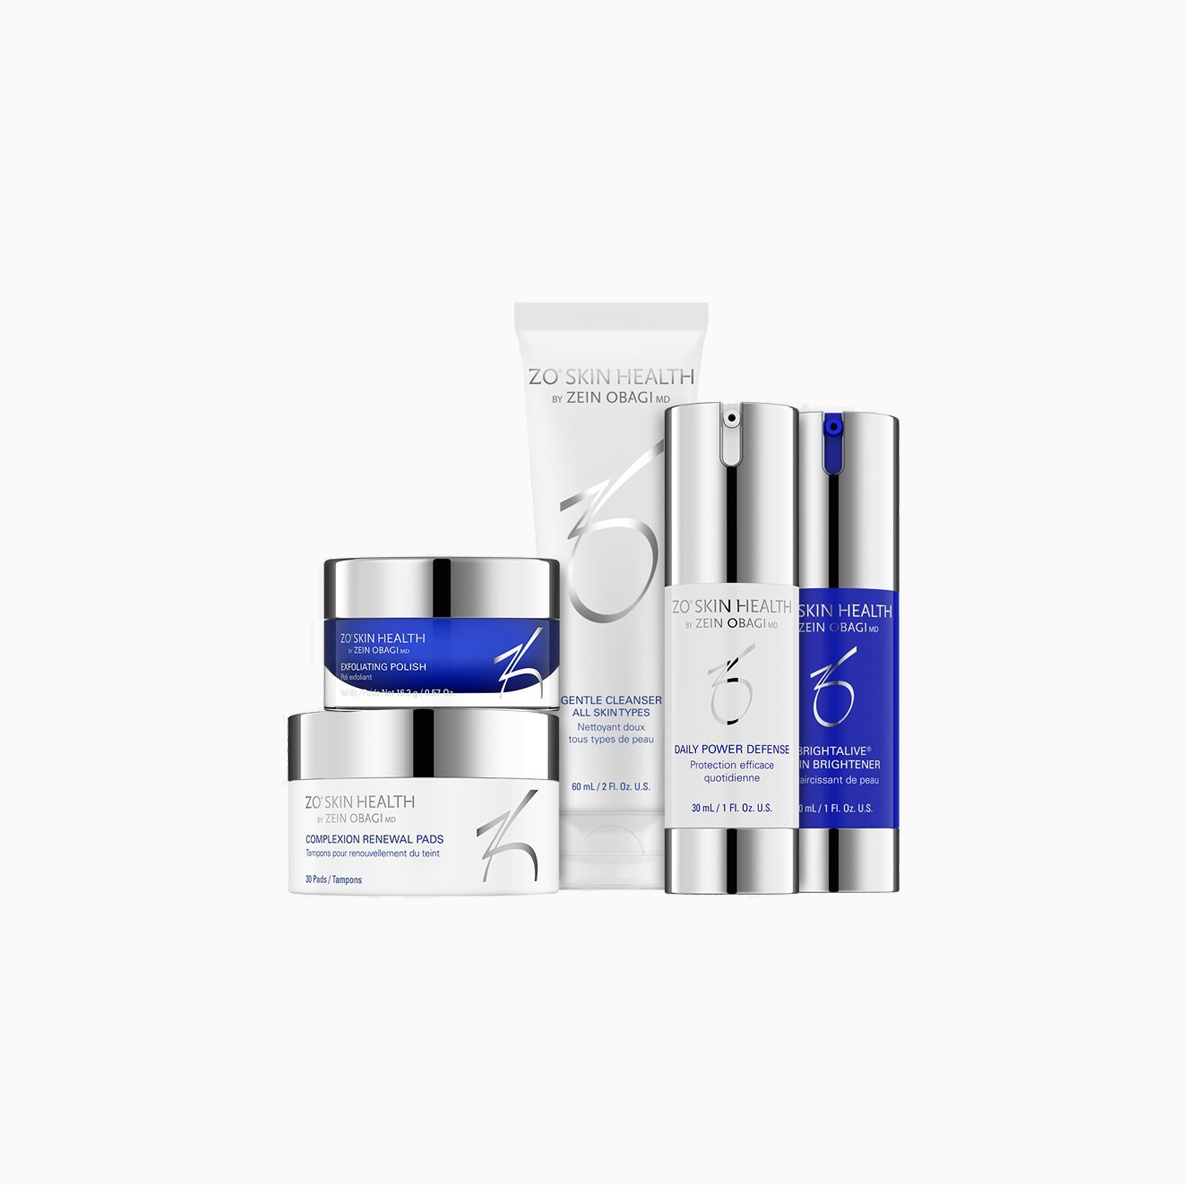 Dermanet.no - Zo Skin Health Skin Brightening Program